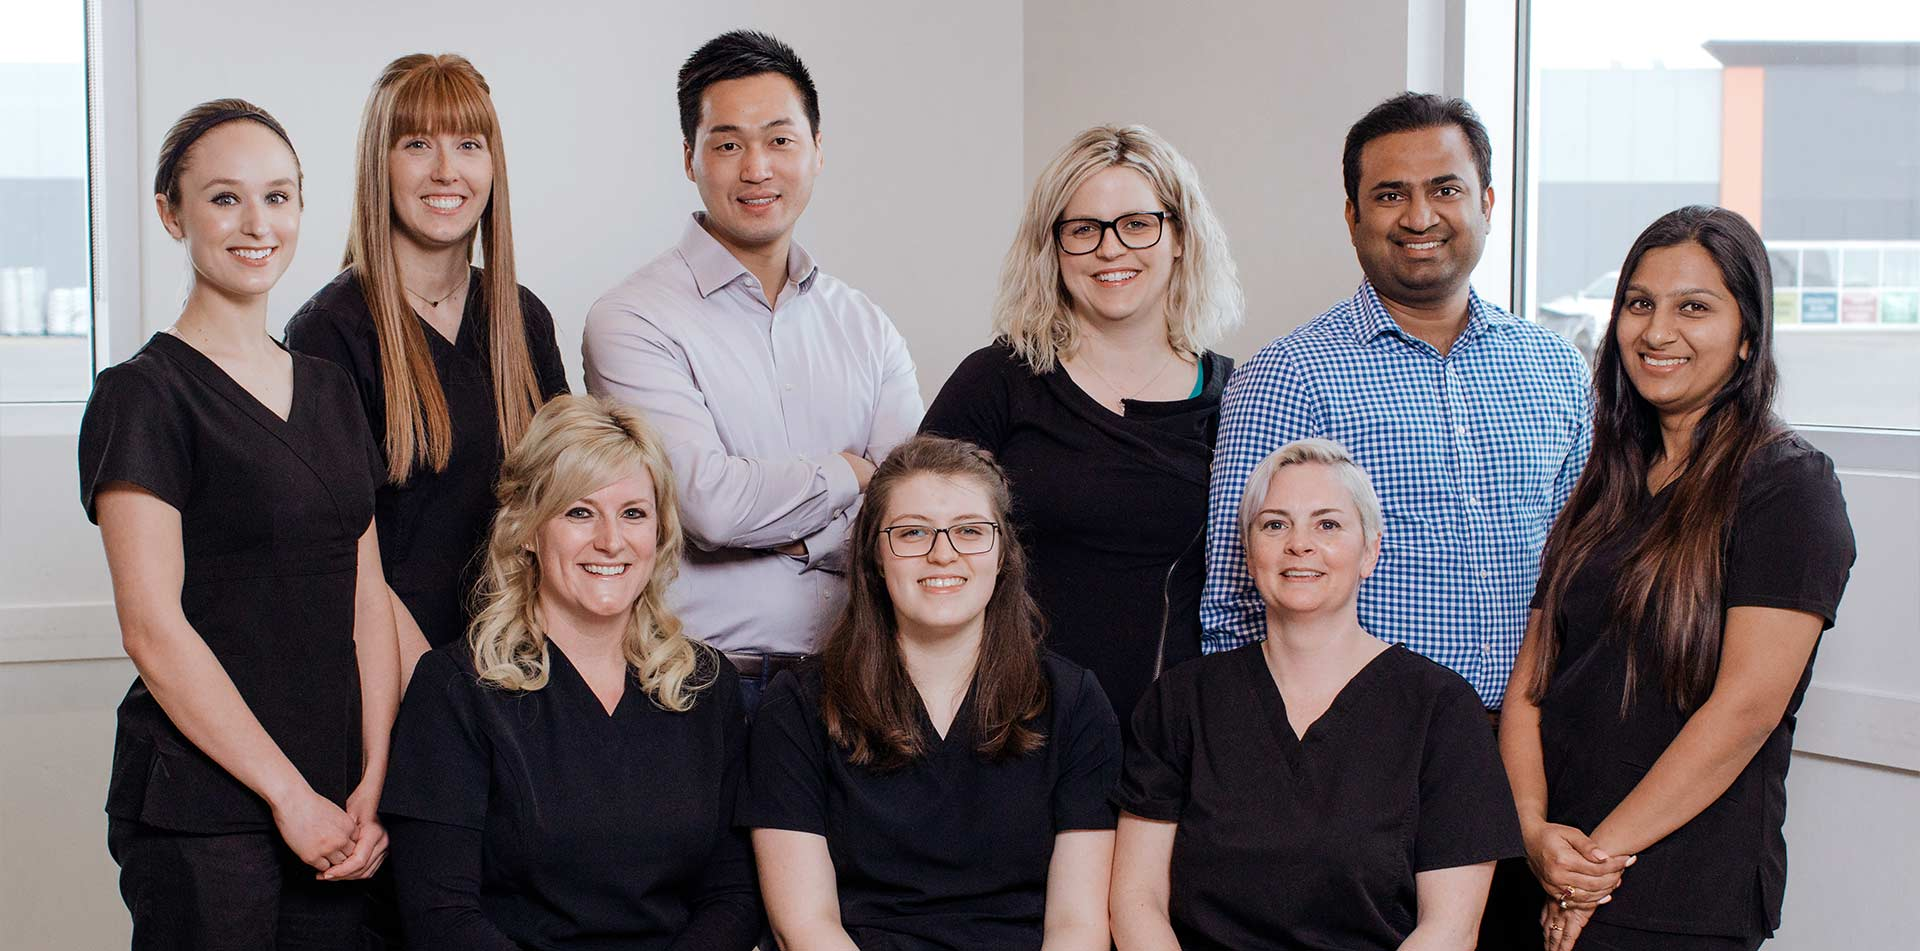 Vegreville Family Dental Team